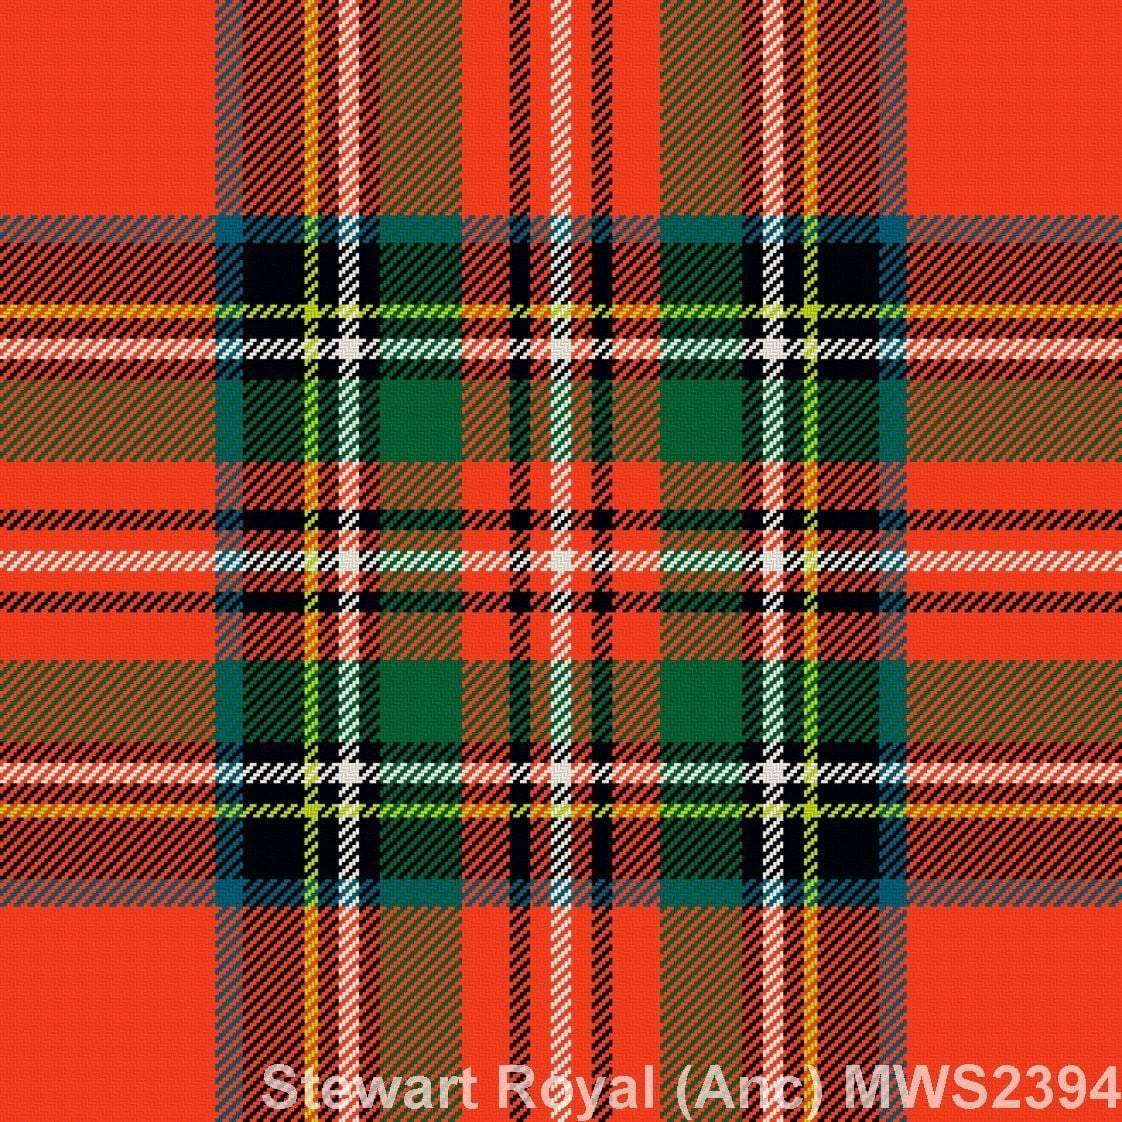 Stewart Royal Ancient